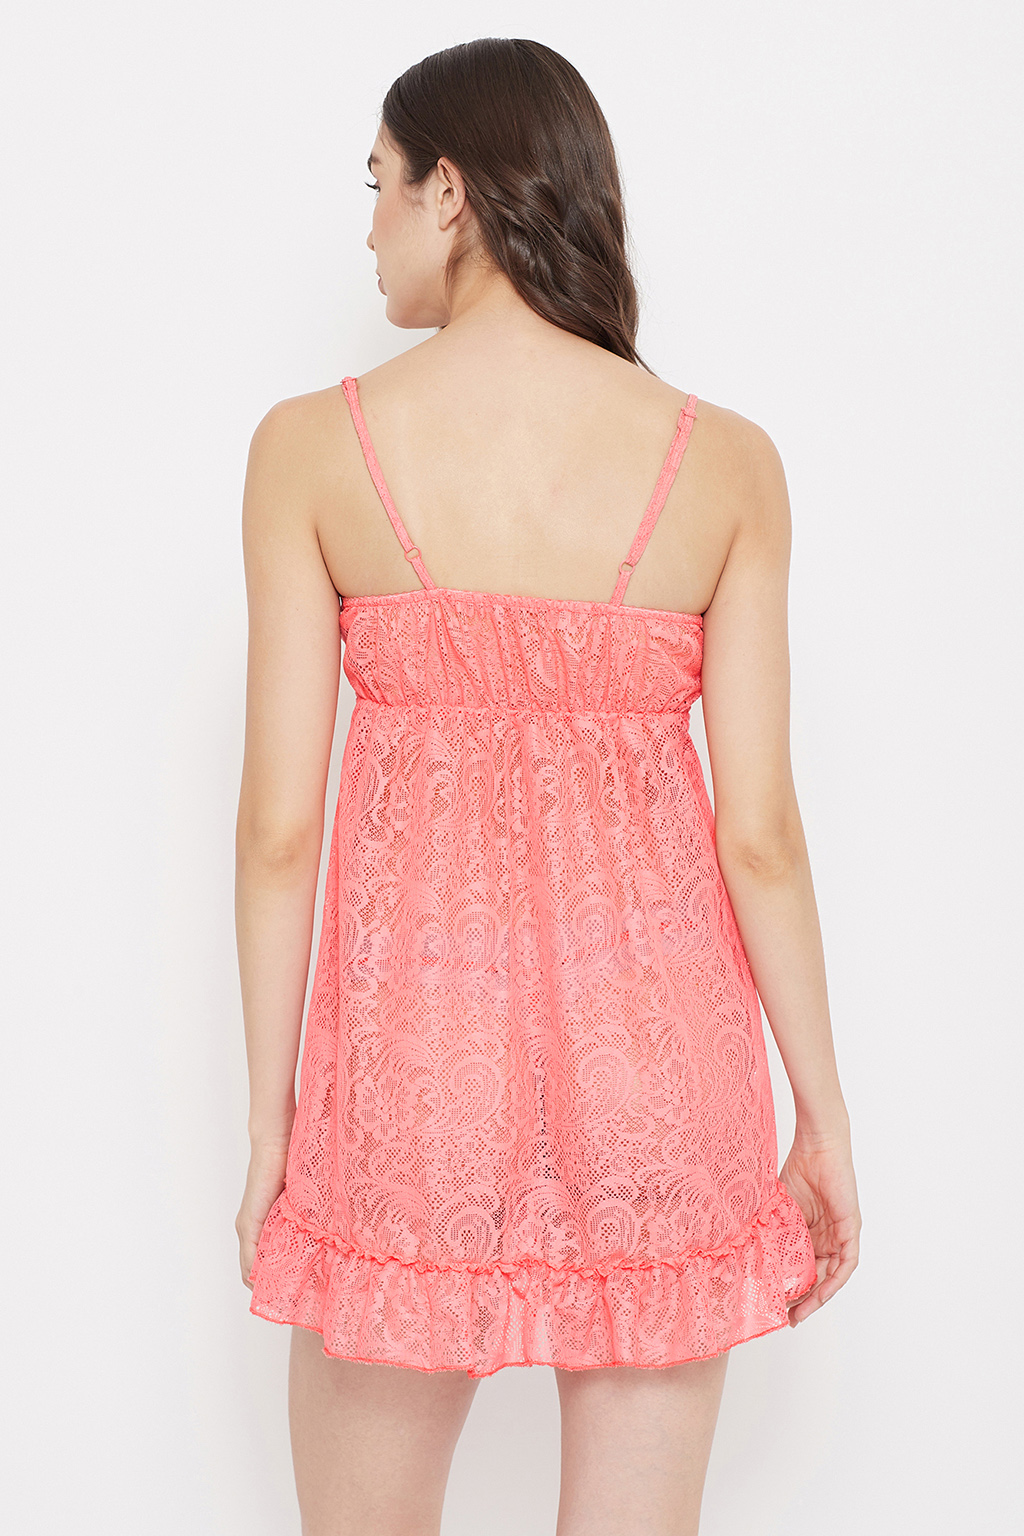 Clovia Lace Babydoll With Matching G-String (Peach, M, Loose)